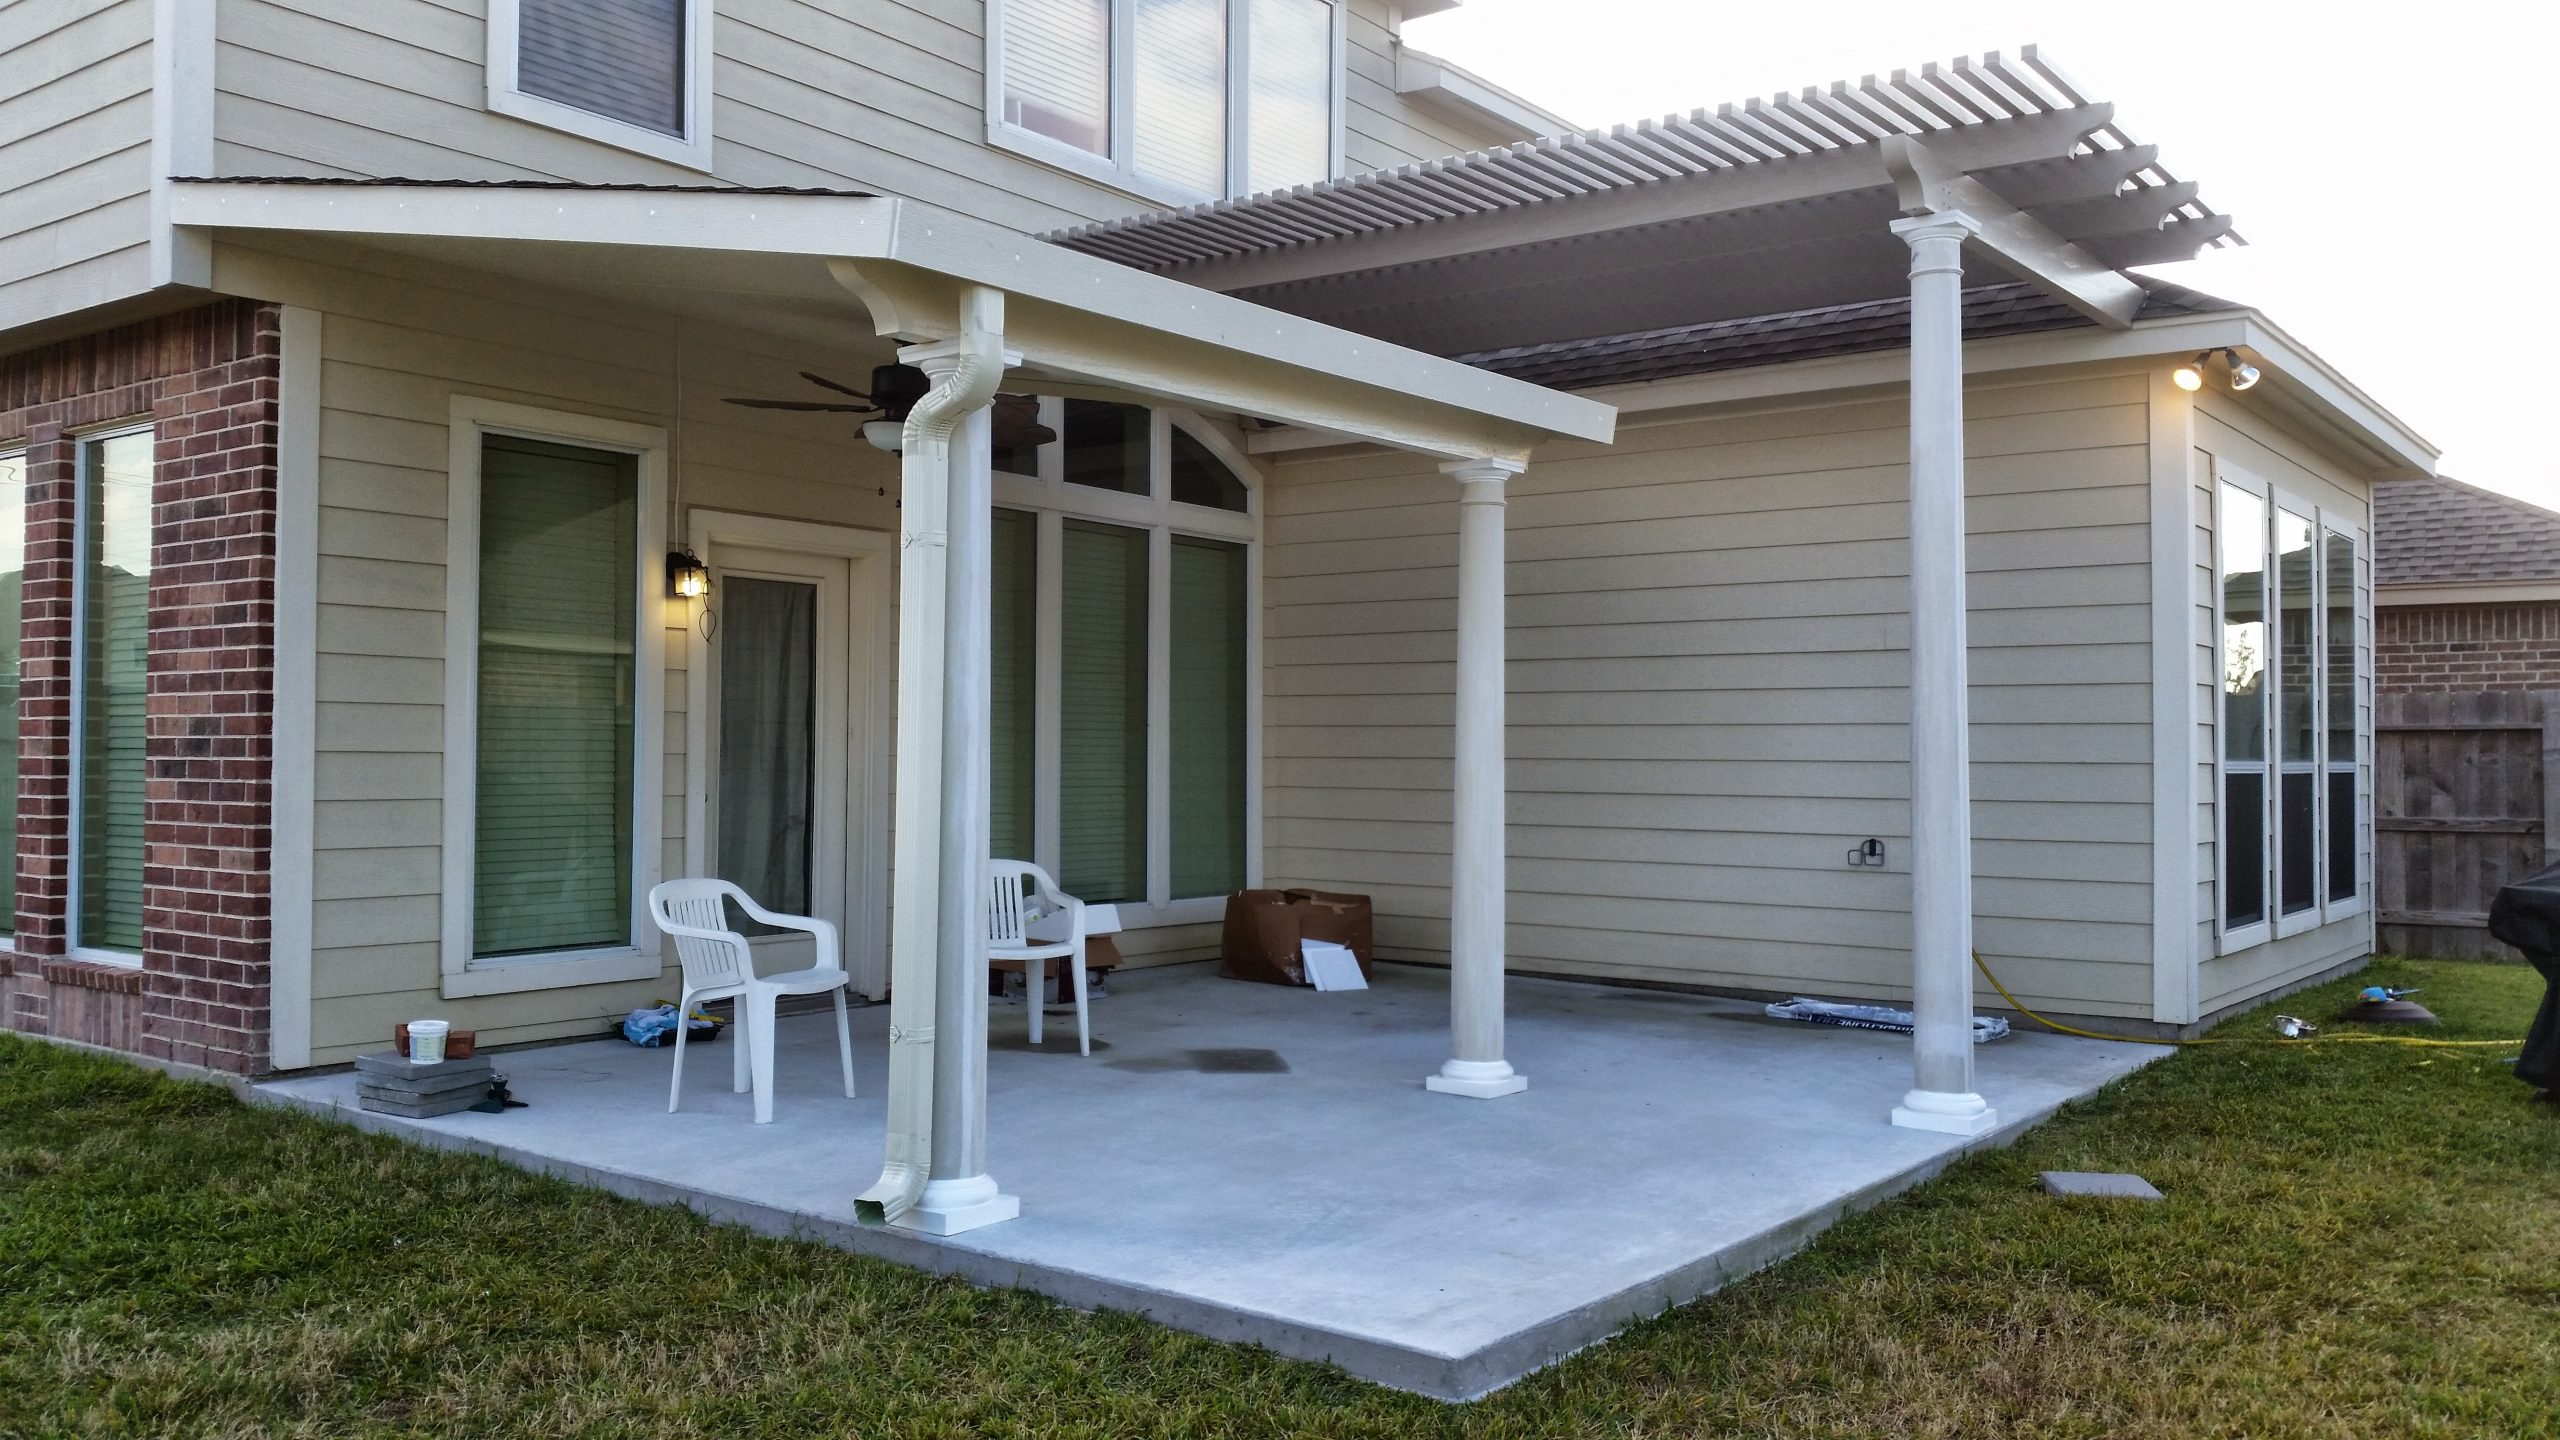 Patio Covers Awnings in White Pearland, TX